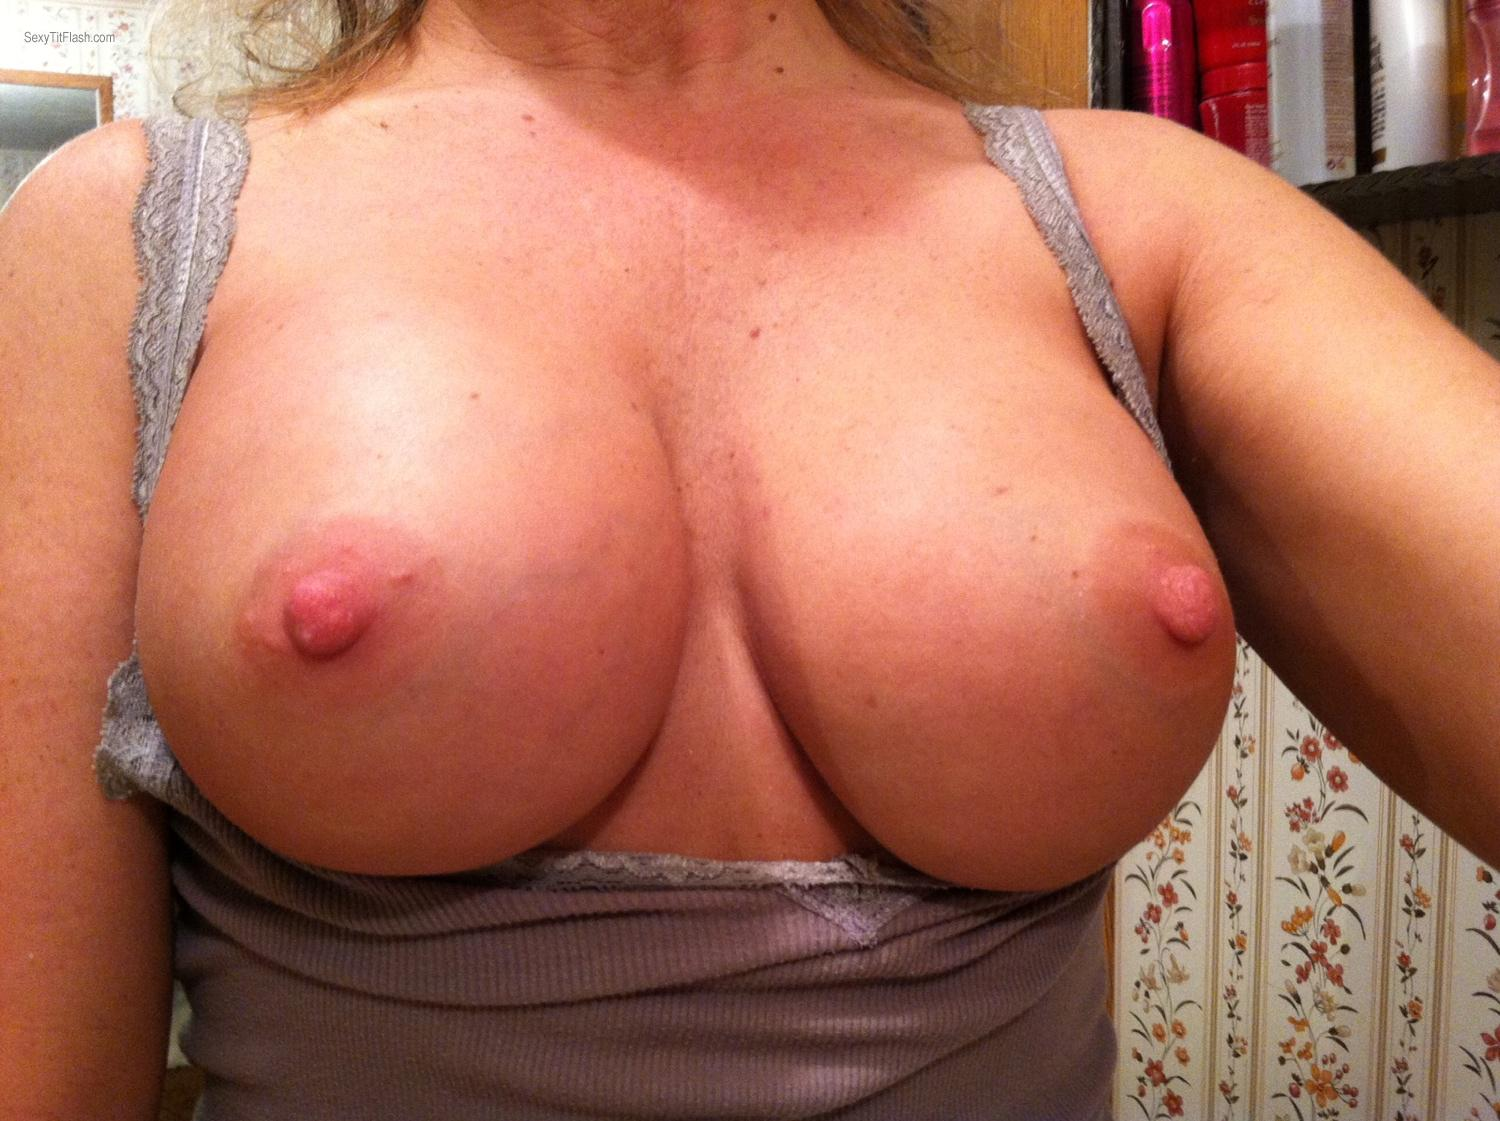 Tit Flash: My Big Tits By IPhone (Selfie) - Sandy Cheeks from United States